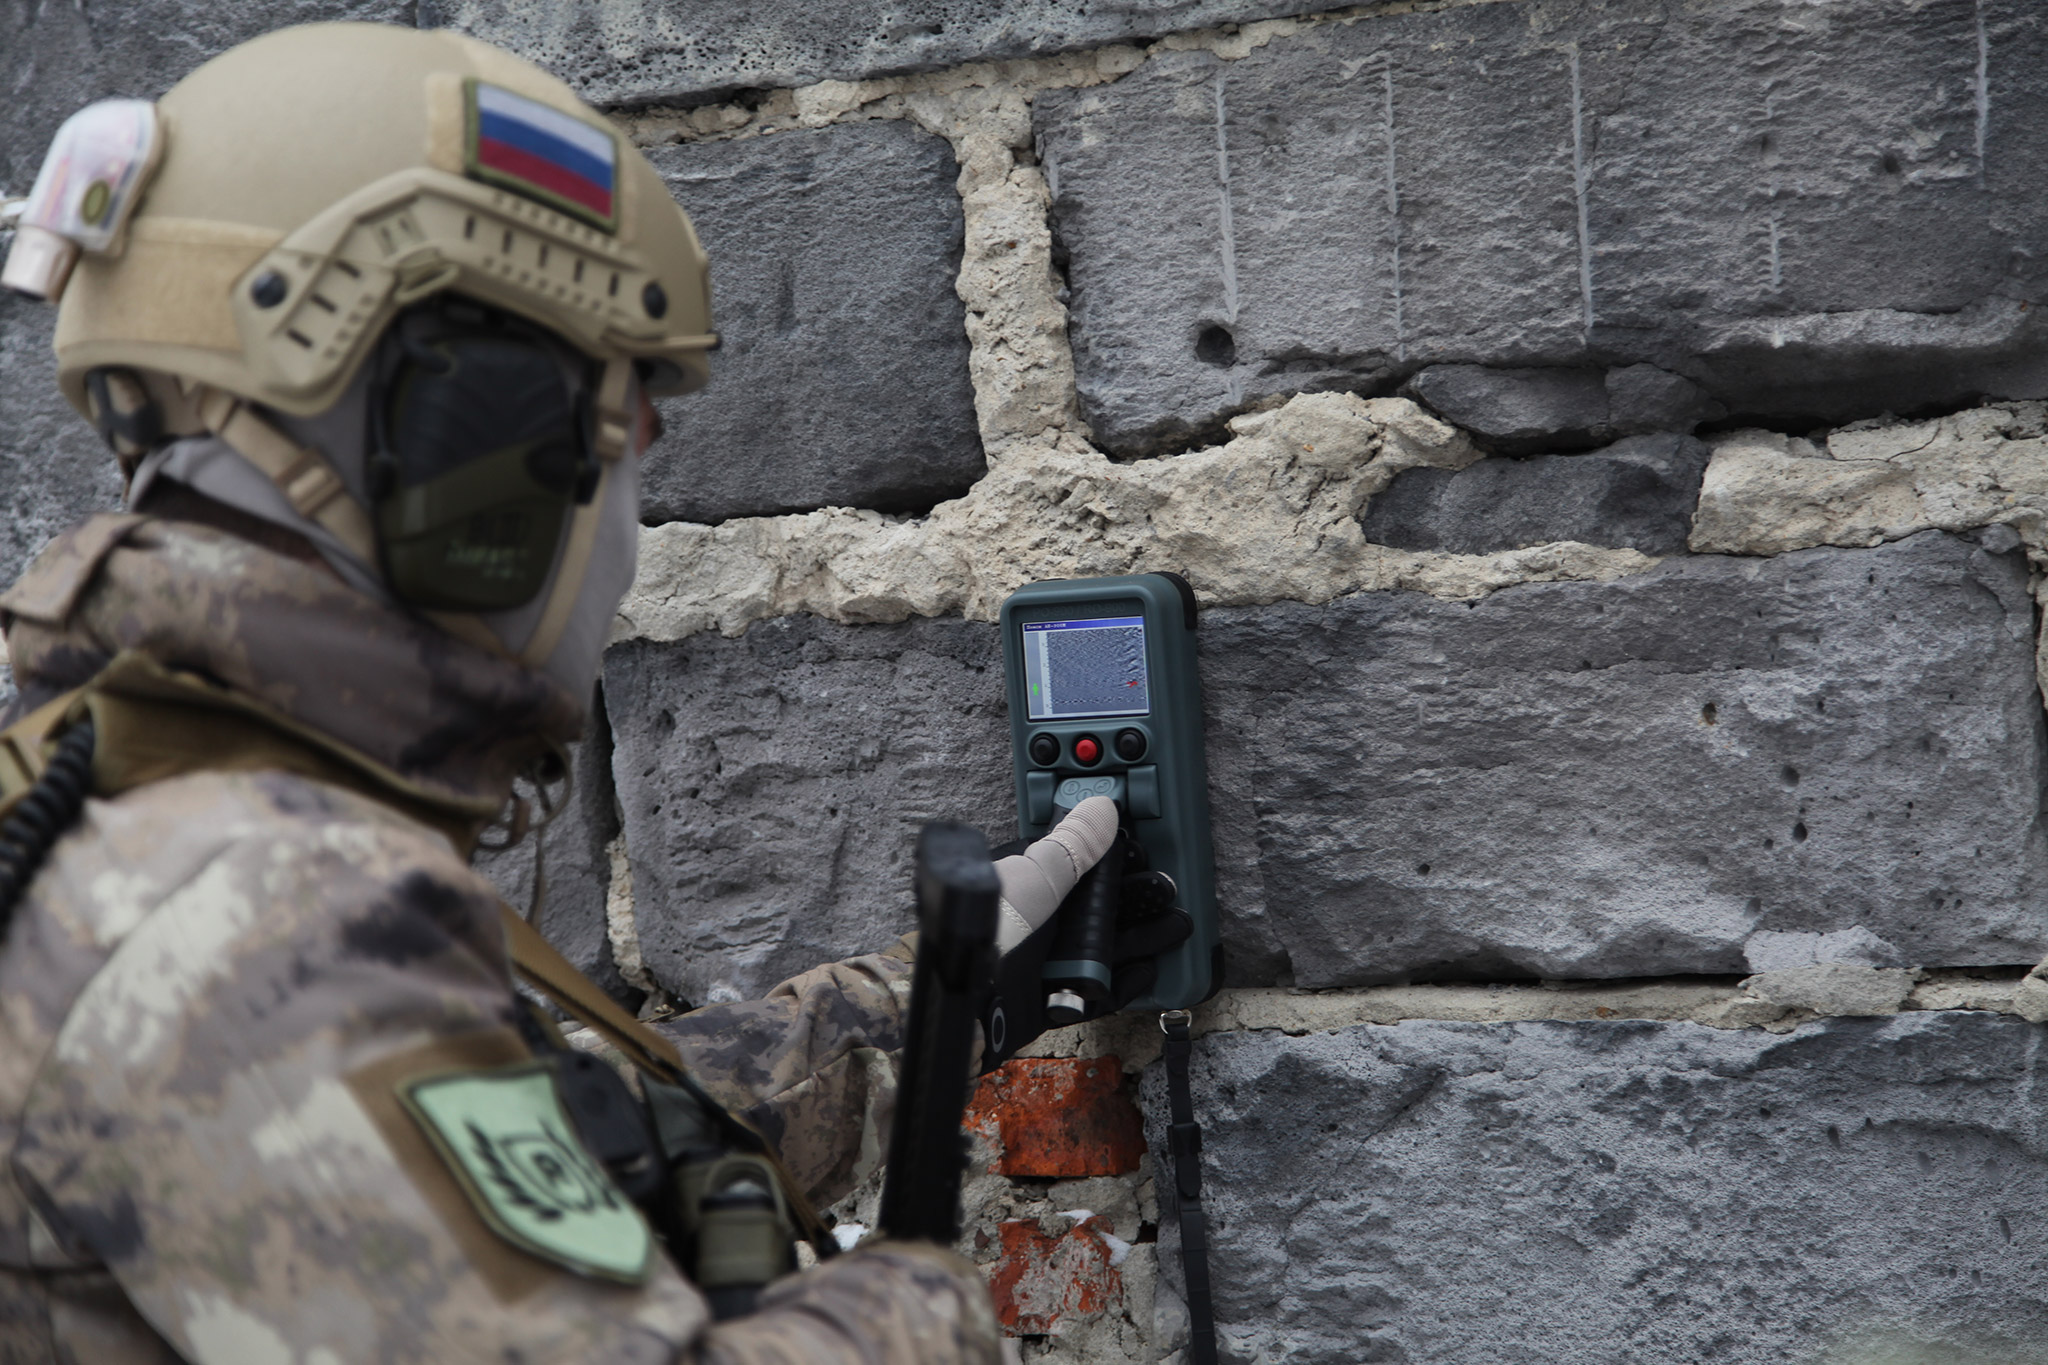 Stenovizor RO-900 radar will allow soldiers of the Russian National Guard to detect terrorists at a safe distance.